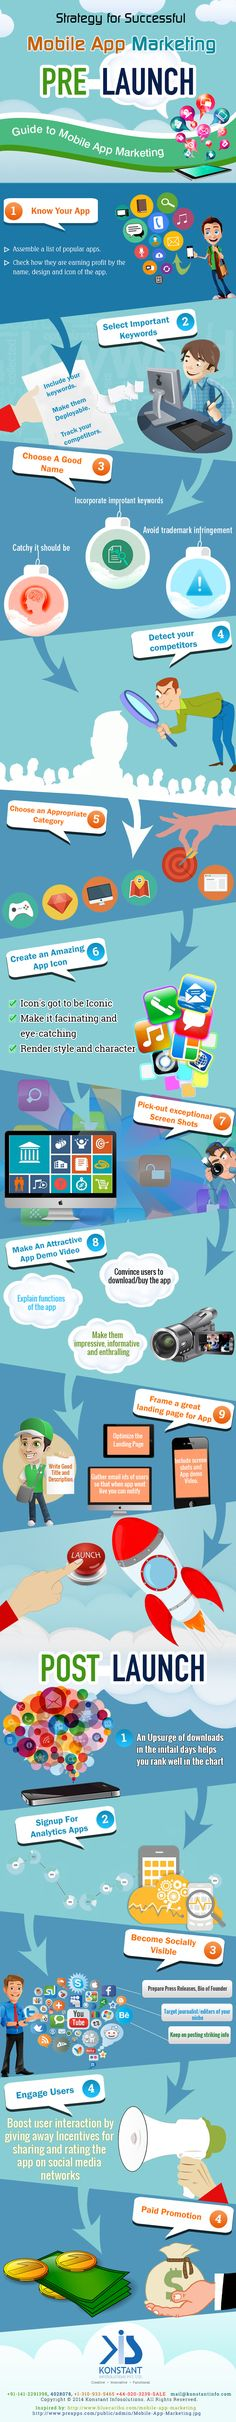 Infographic: Strategy for Successful Mobile App Marketing #infographic